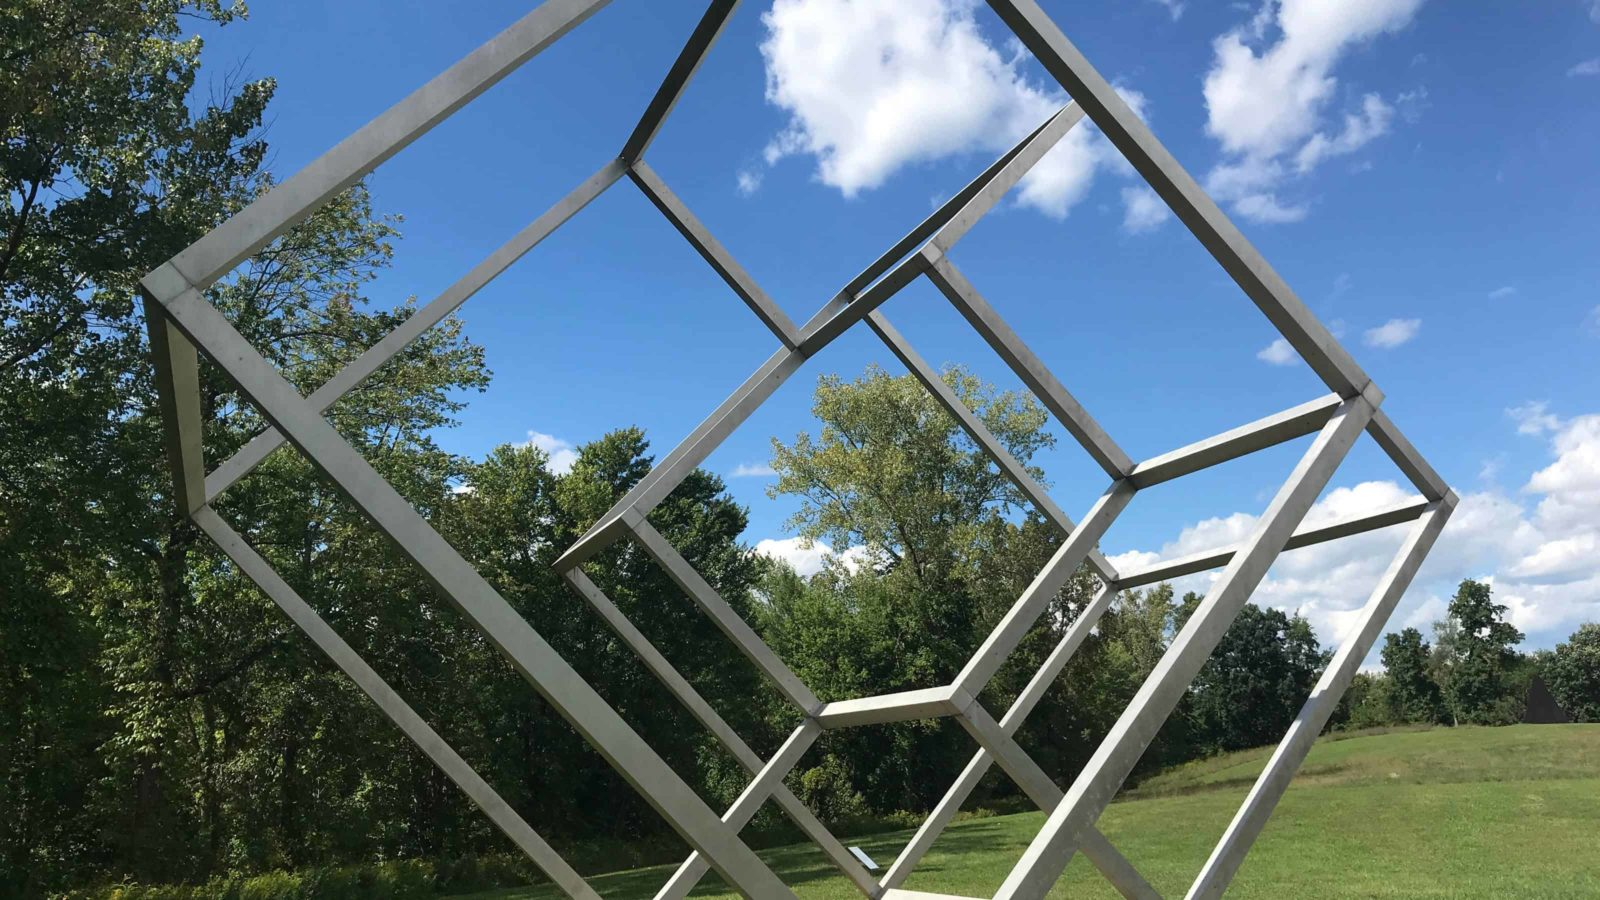 Forrest Myers' Valledor 1969 frames the fields at Art OMI in Ghent, N.Y.